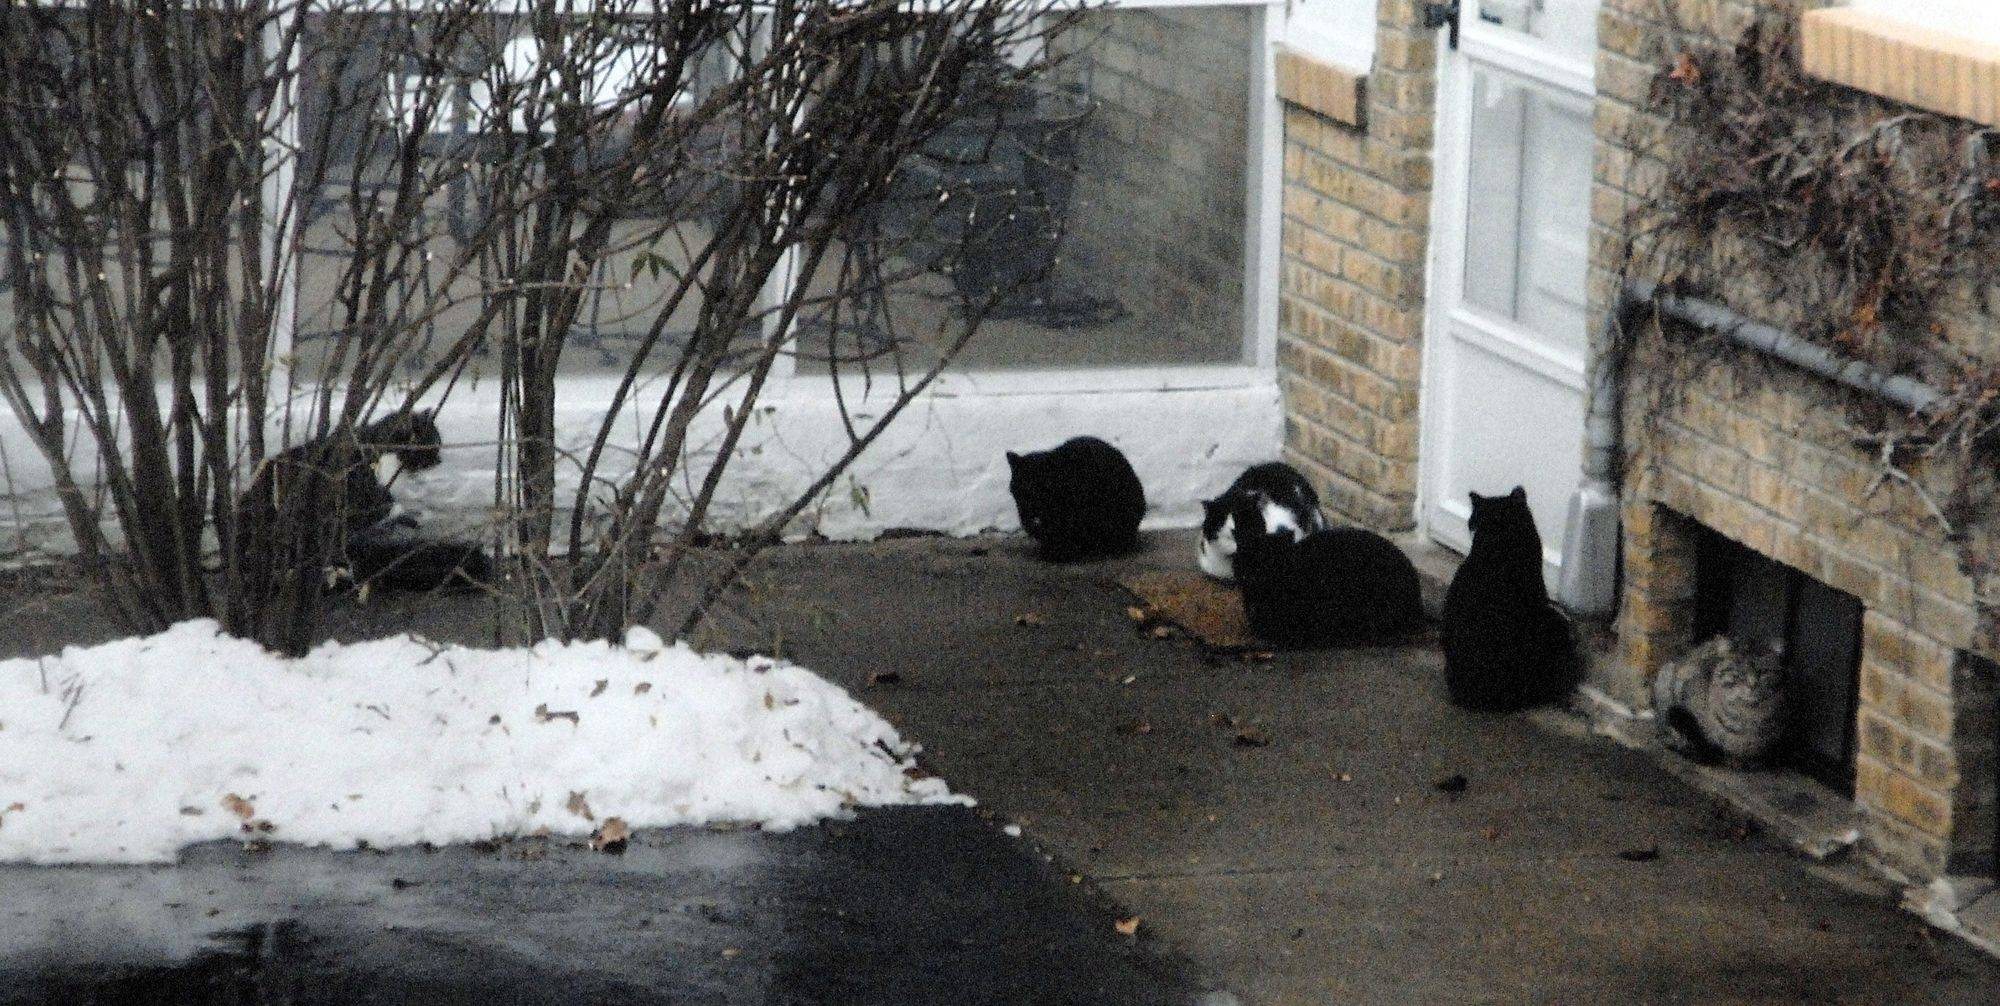 Mount Prospect's Lisa Pacini talked about her neighbor's feral cat colony in January, where as many as six cats waited for their next meal on her neighbor's sidewalk. She wants Mount Prospect to address the problem with stricter guidelines.